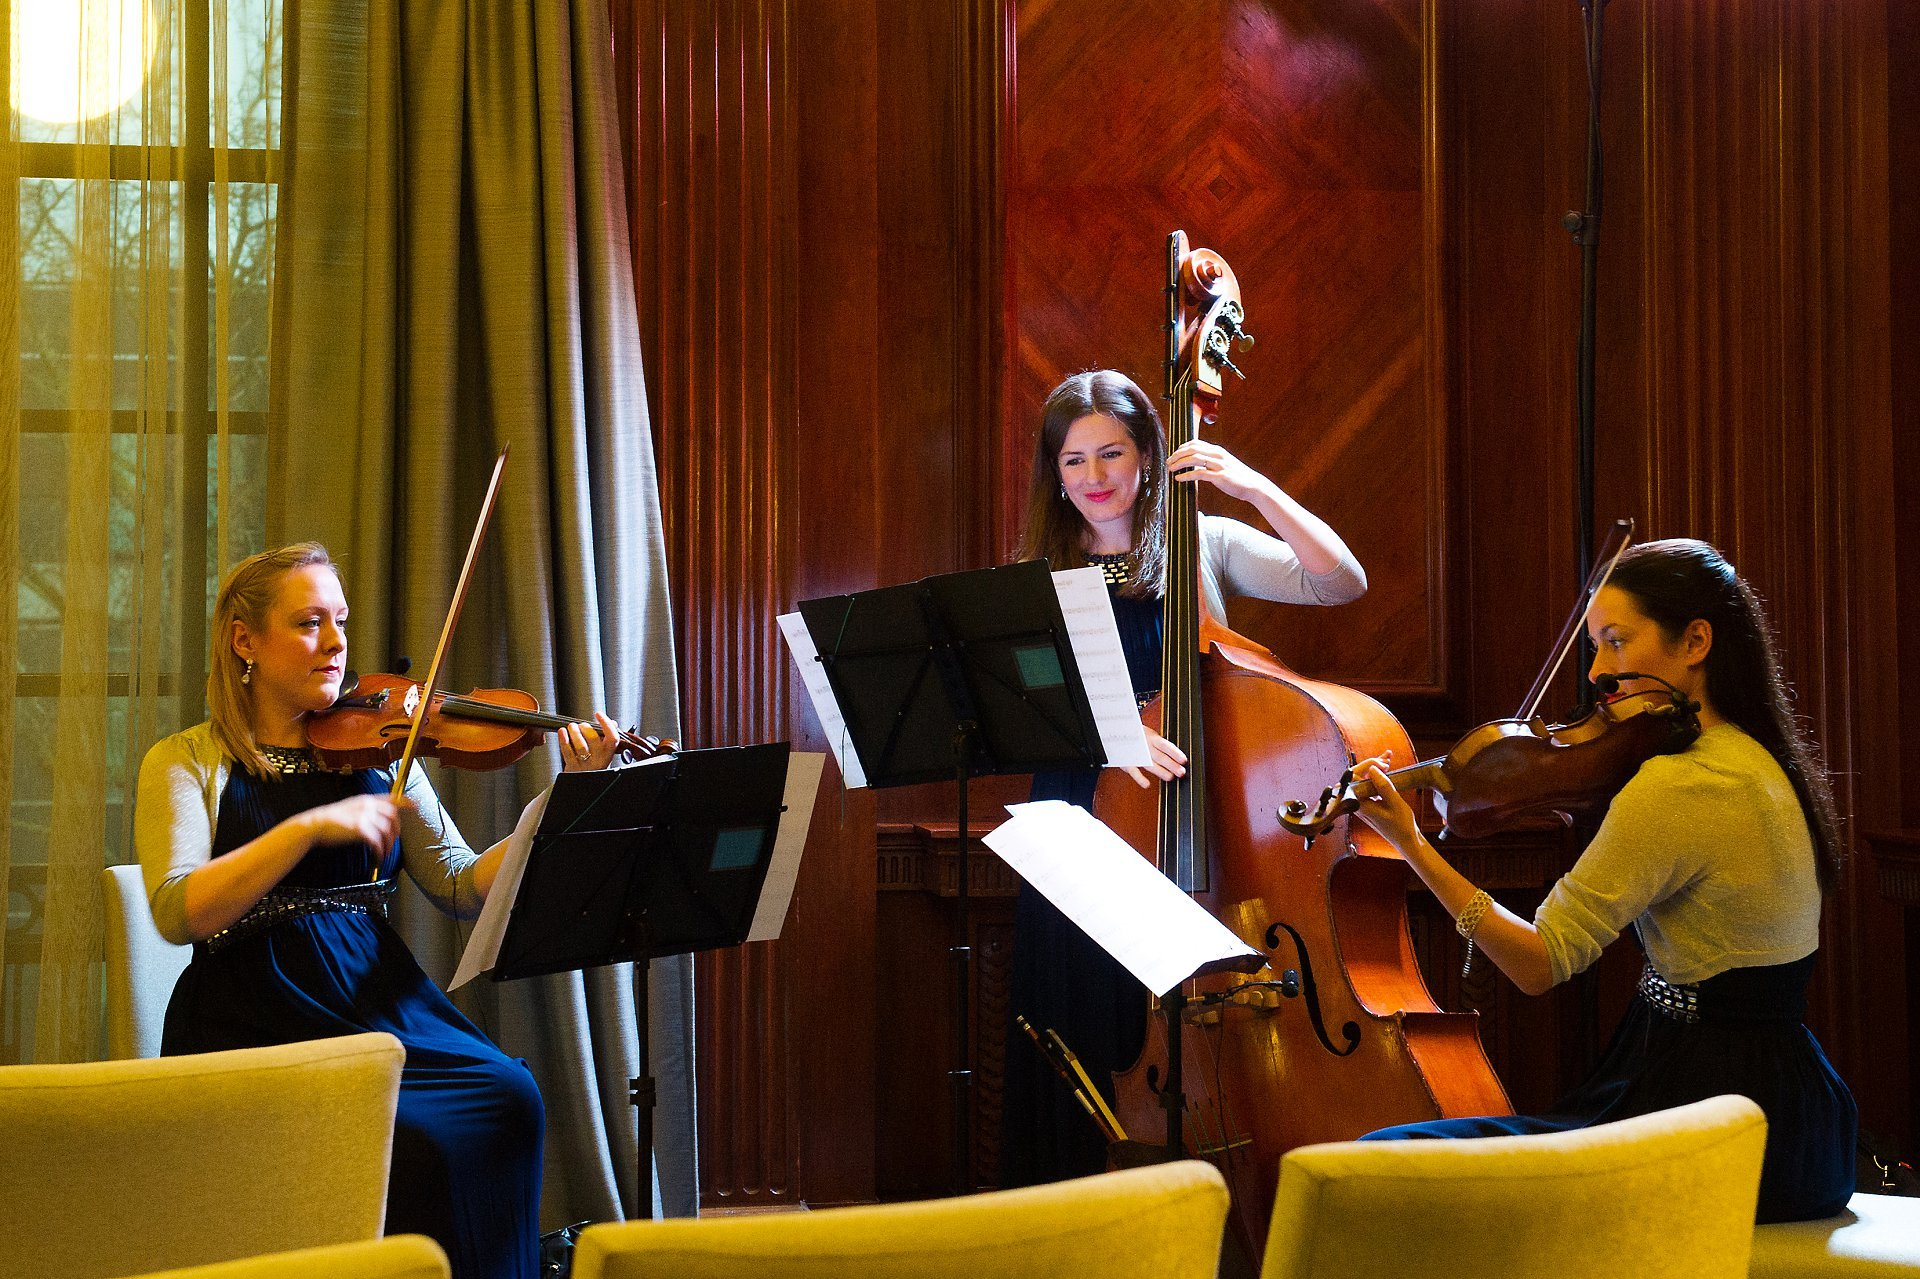 Old Marylebone Town Hall reopening party with Blue Topaz Strings playing for guests